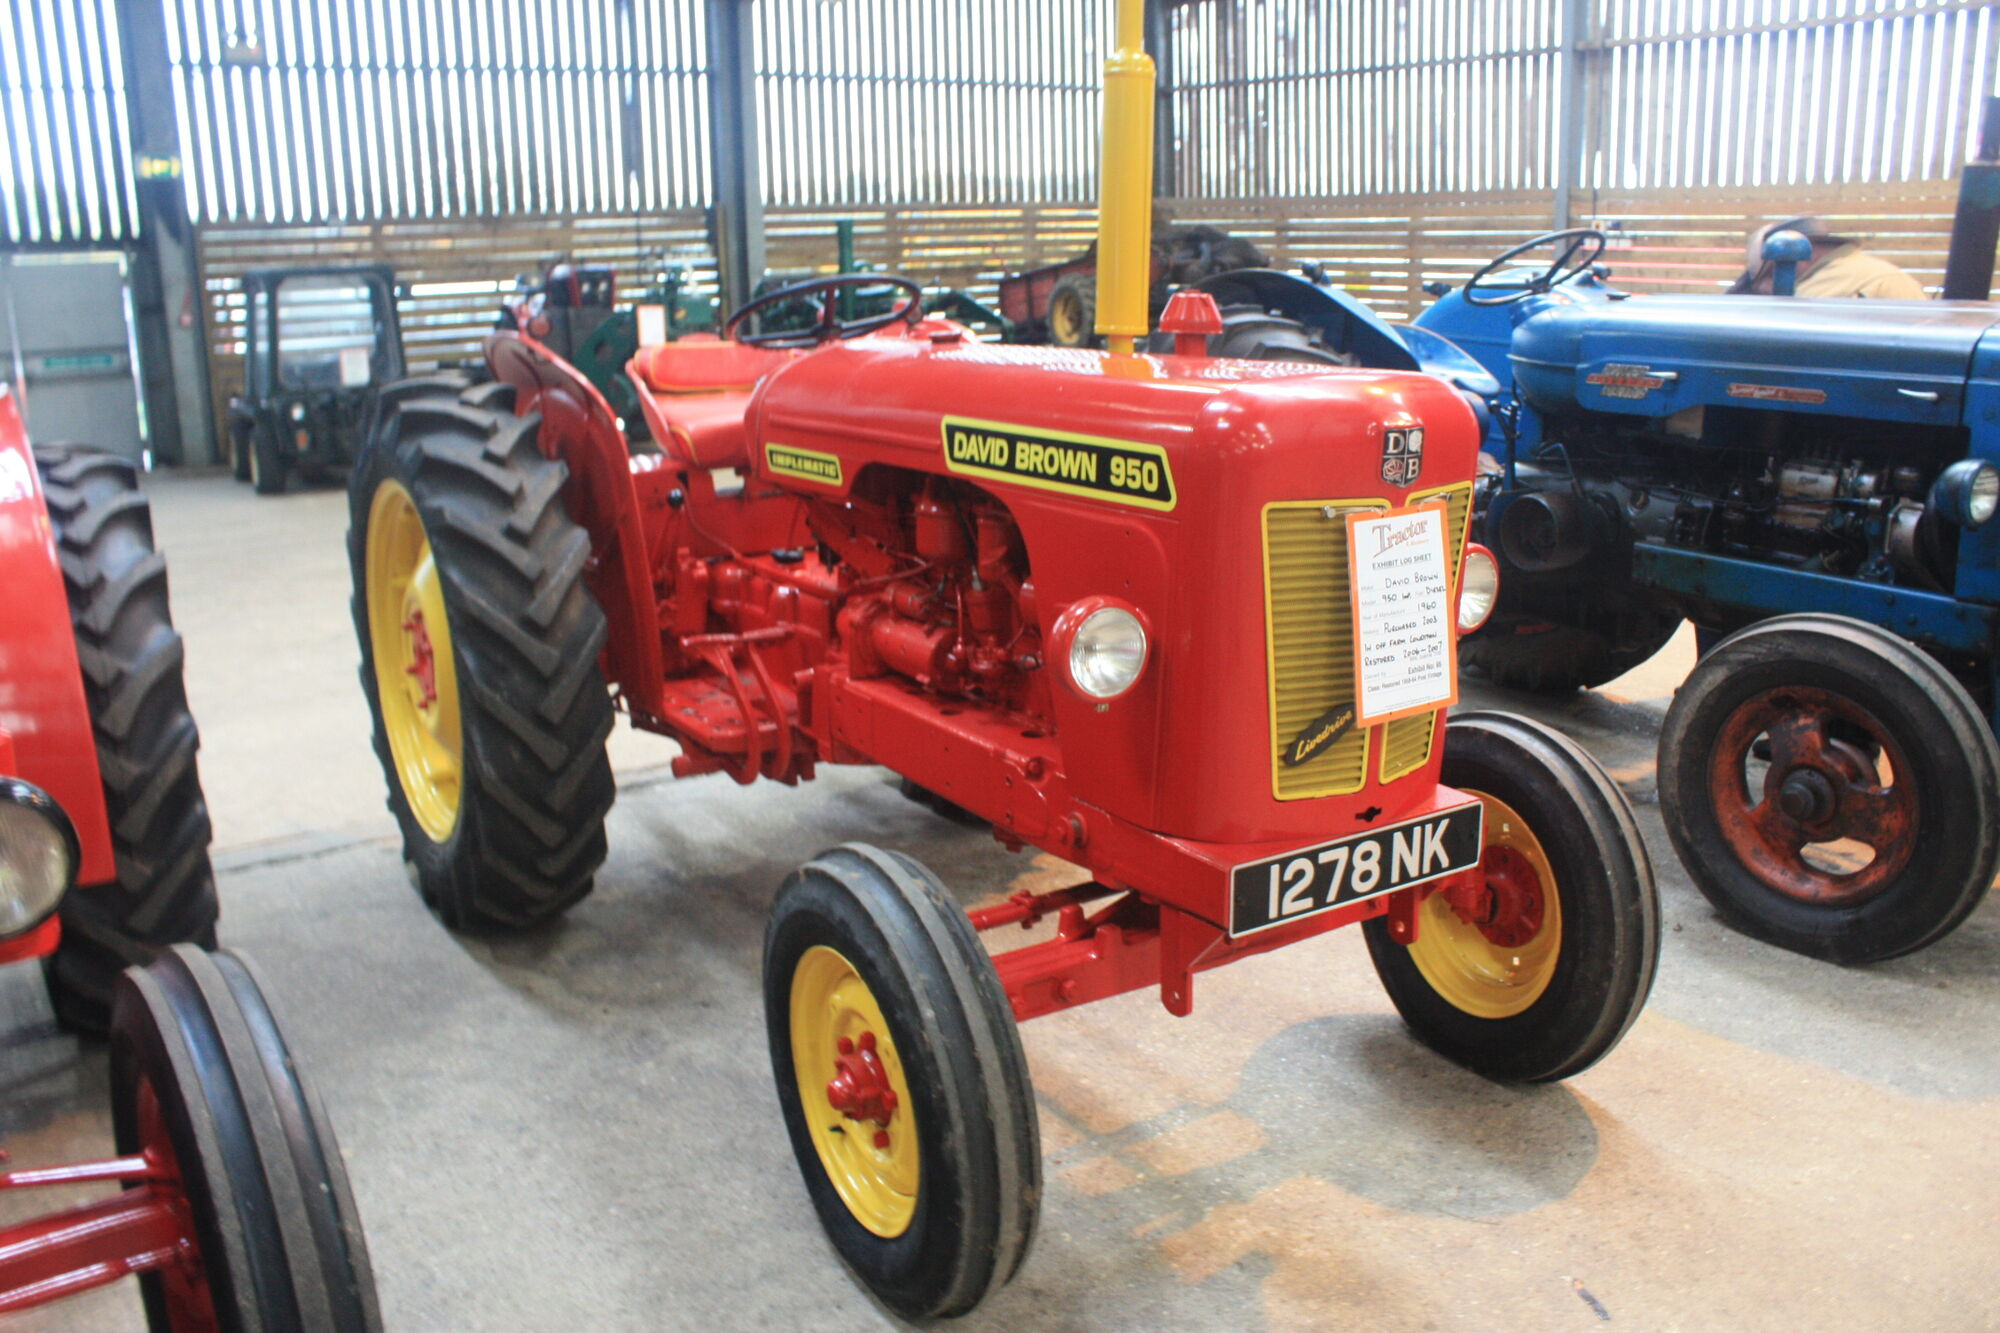 David Brown 950 Implematic | Tractor & Construction Plant Wiki | FANDOM  powered by Wikia